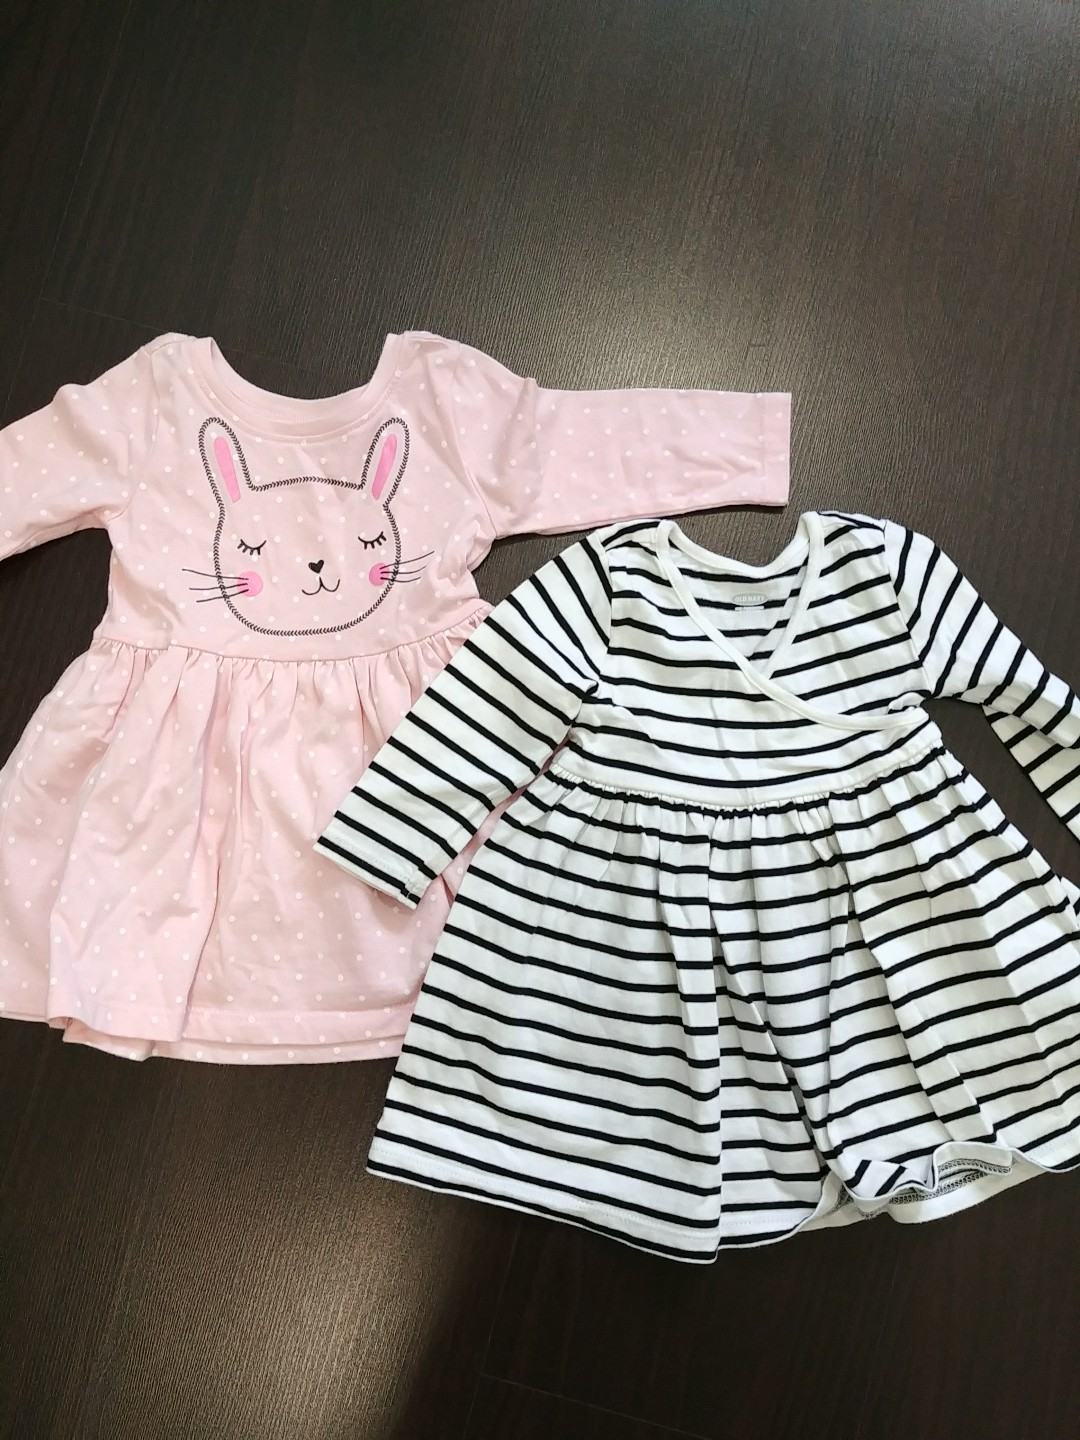 c8d74c0f9fa5 Lot of 2 old navy long sleeved dresses for baby girl 3-6 months ...